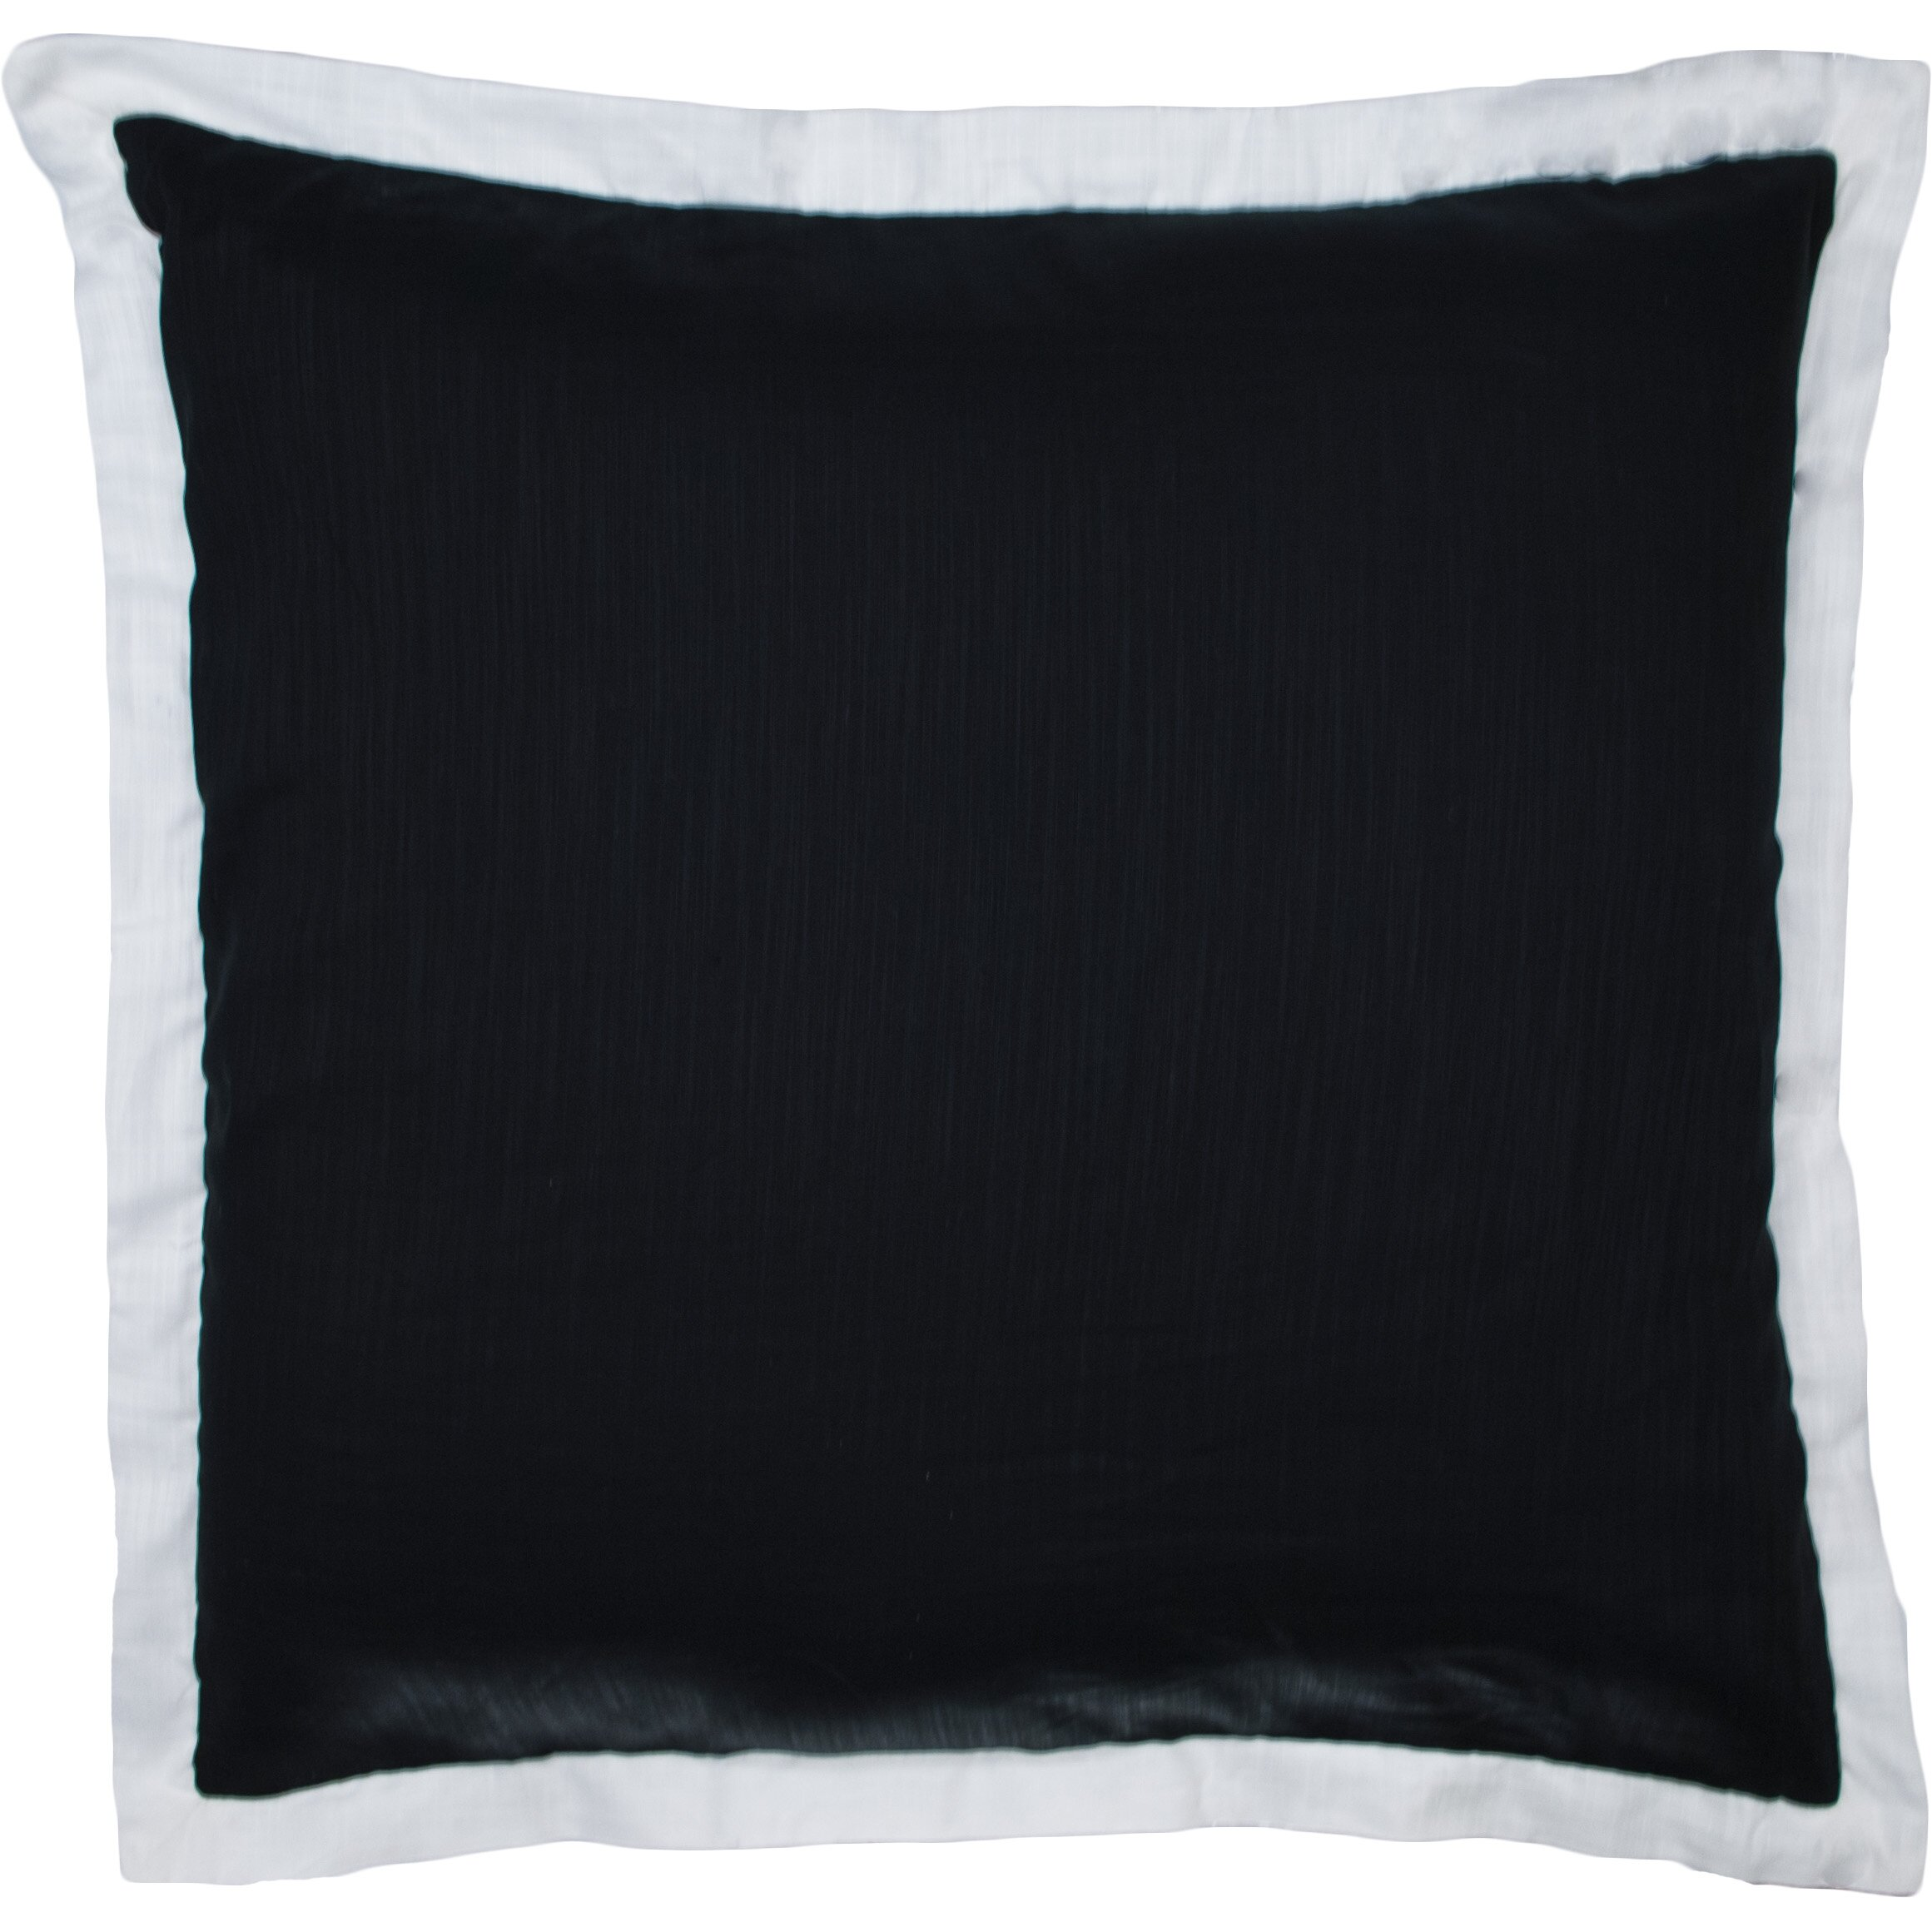 Euro shams are square pillow cases that come in 26